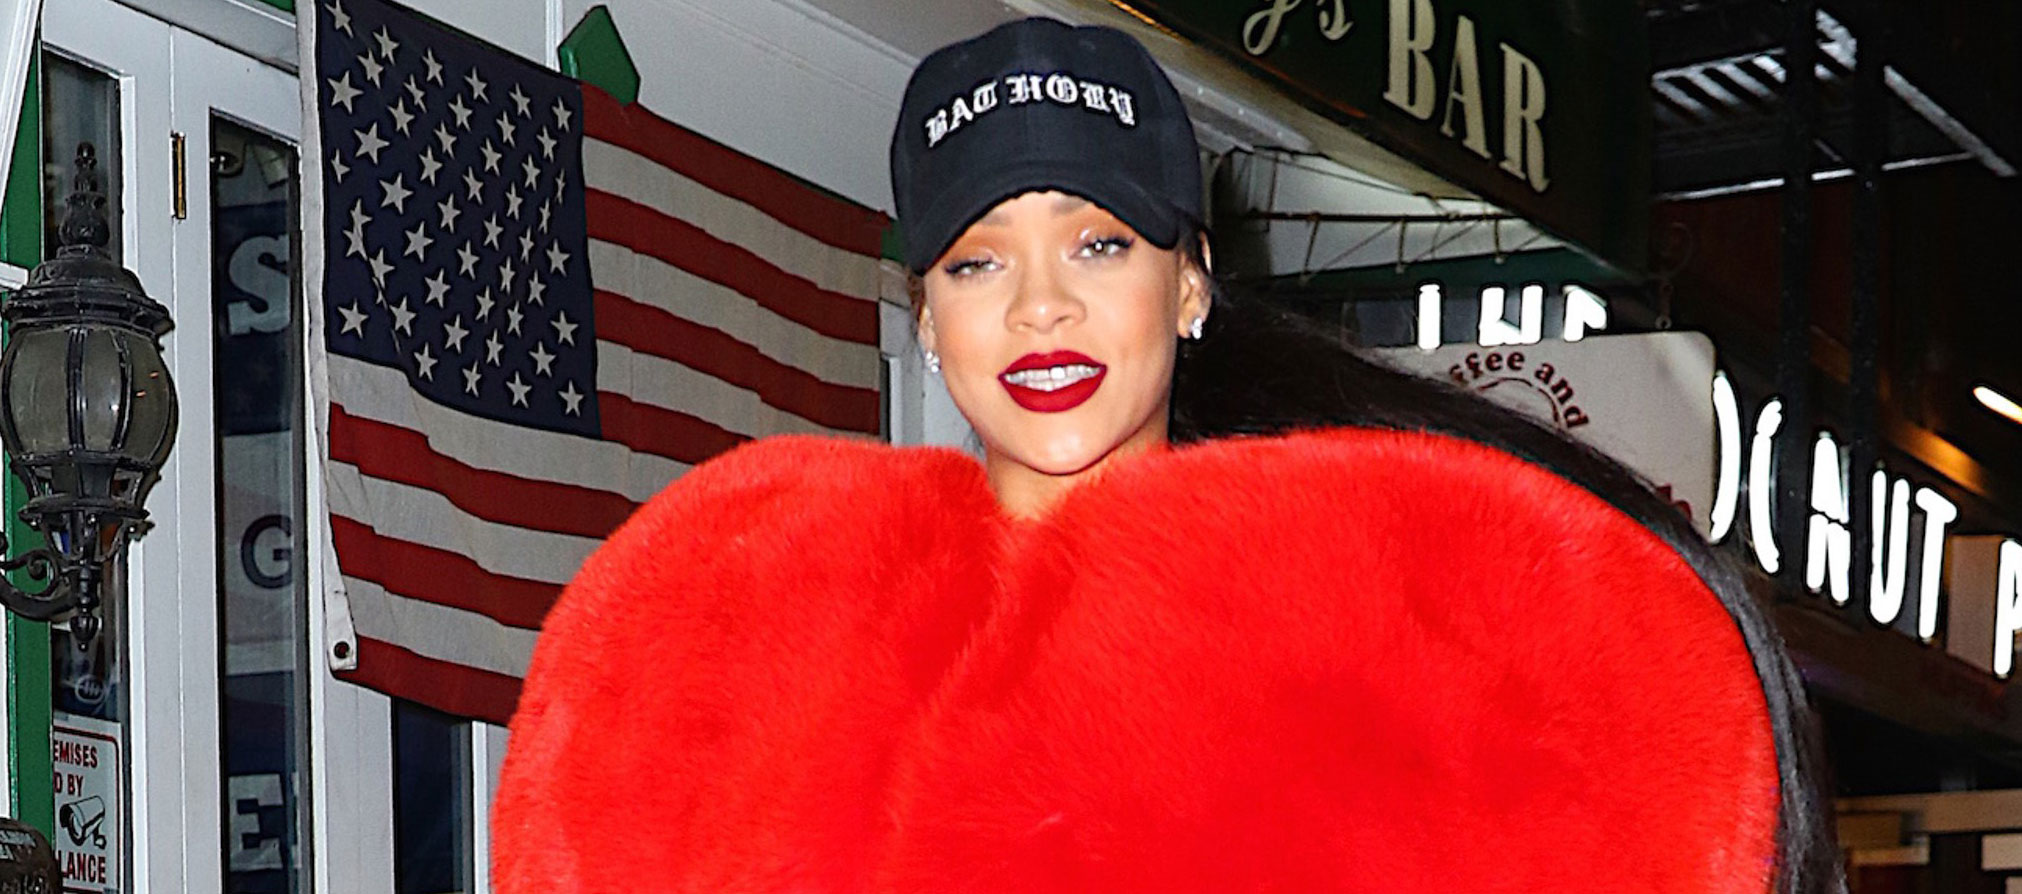 feabe2472e2 Rihanna Shows Off Her Love for NYC in Red Fur Heart Coat - Rihanna ...